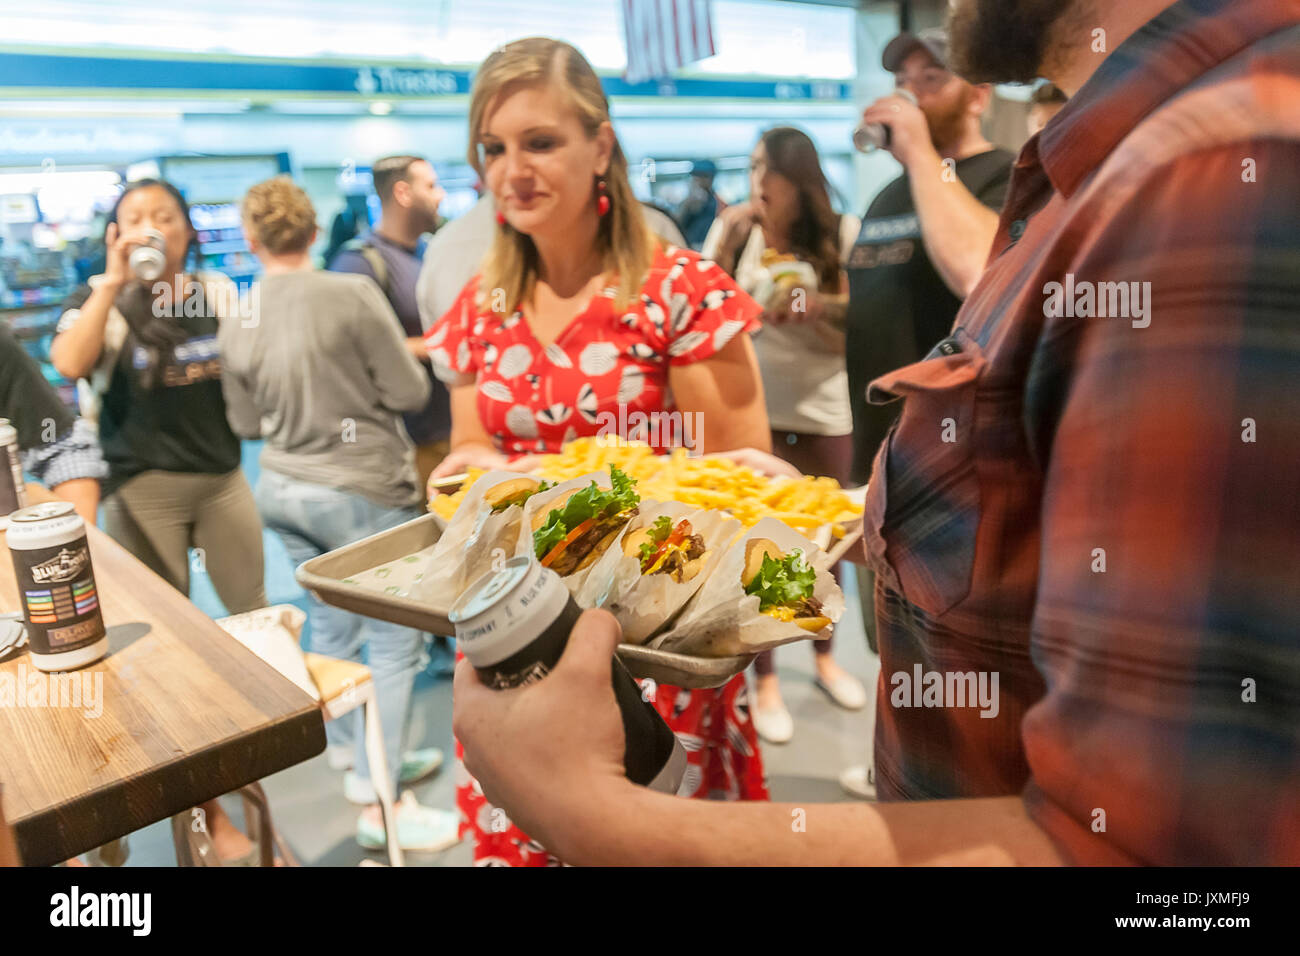 Throngs of hungry burger lovers and thirsty beer drinkers flock to the Shake Shack in Penn Station in New York on Monday, August 14, 2017 for the happy hour debut party of Blue Point Brewery's 'Delayed' beer. Reacting to the 'Summer of Hell' that Long Island Railroad passengers are going through because of maintenance track work Blue Point Brewery created their 'Delayed' pilsner beer with the graphics on the can a riff on the LIRR departure boards. The first 100 customers got a free burger with the purchase of a can of 'Delayed'.  ( © Richard B. Levine) - Stock Image